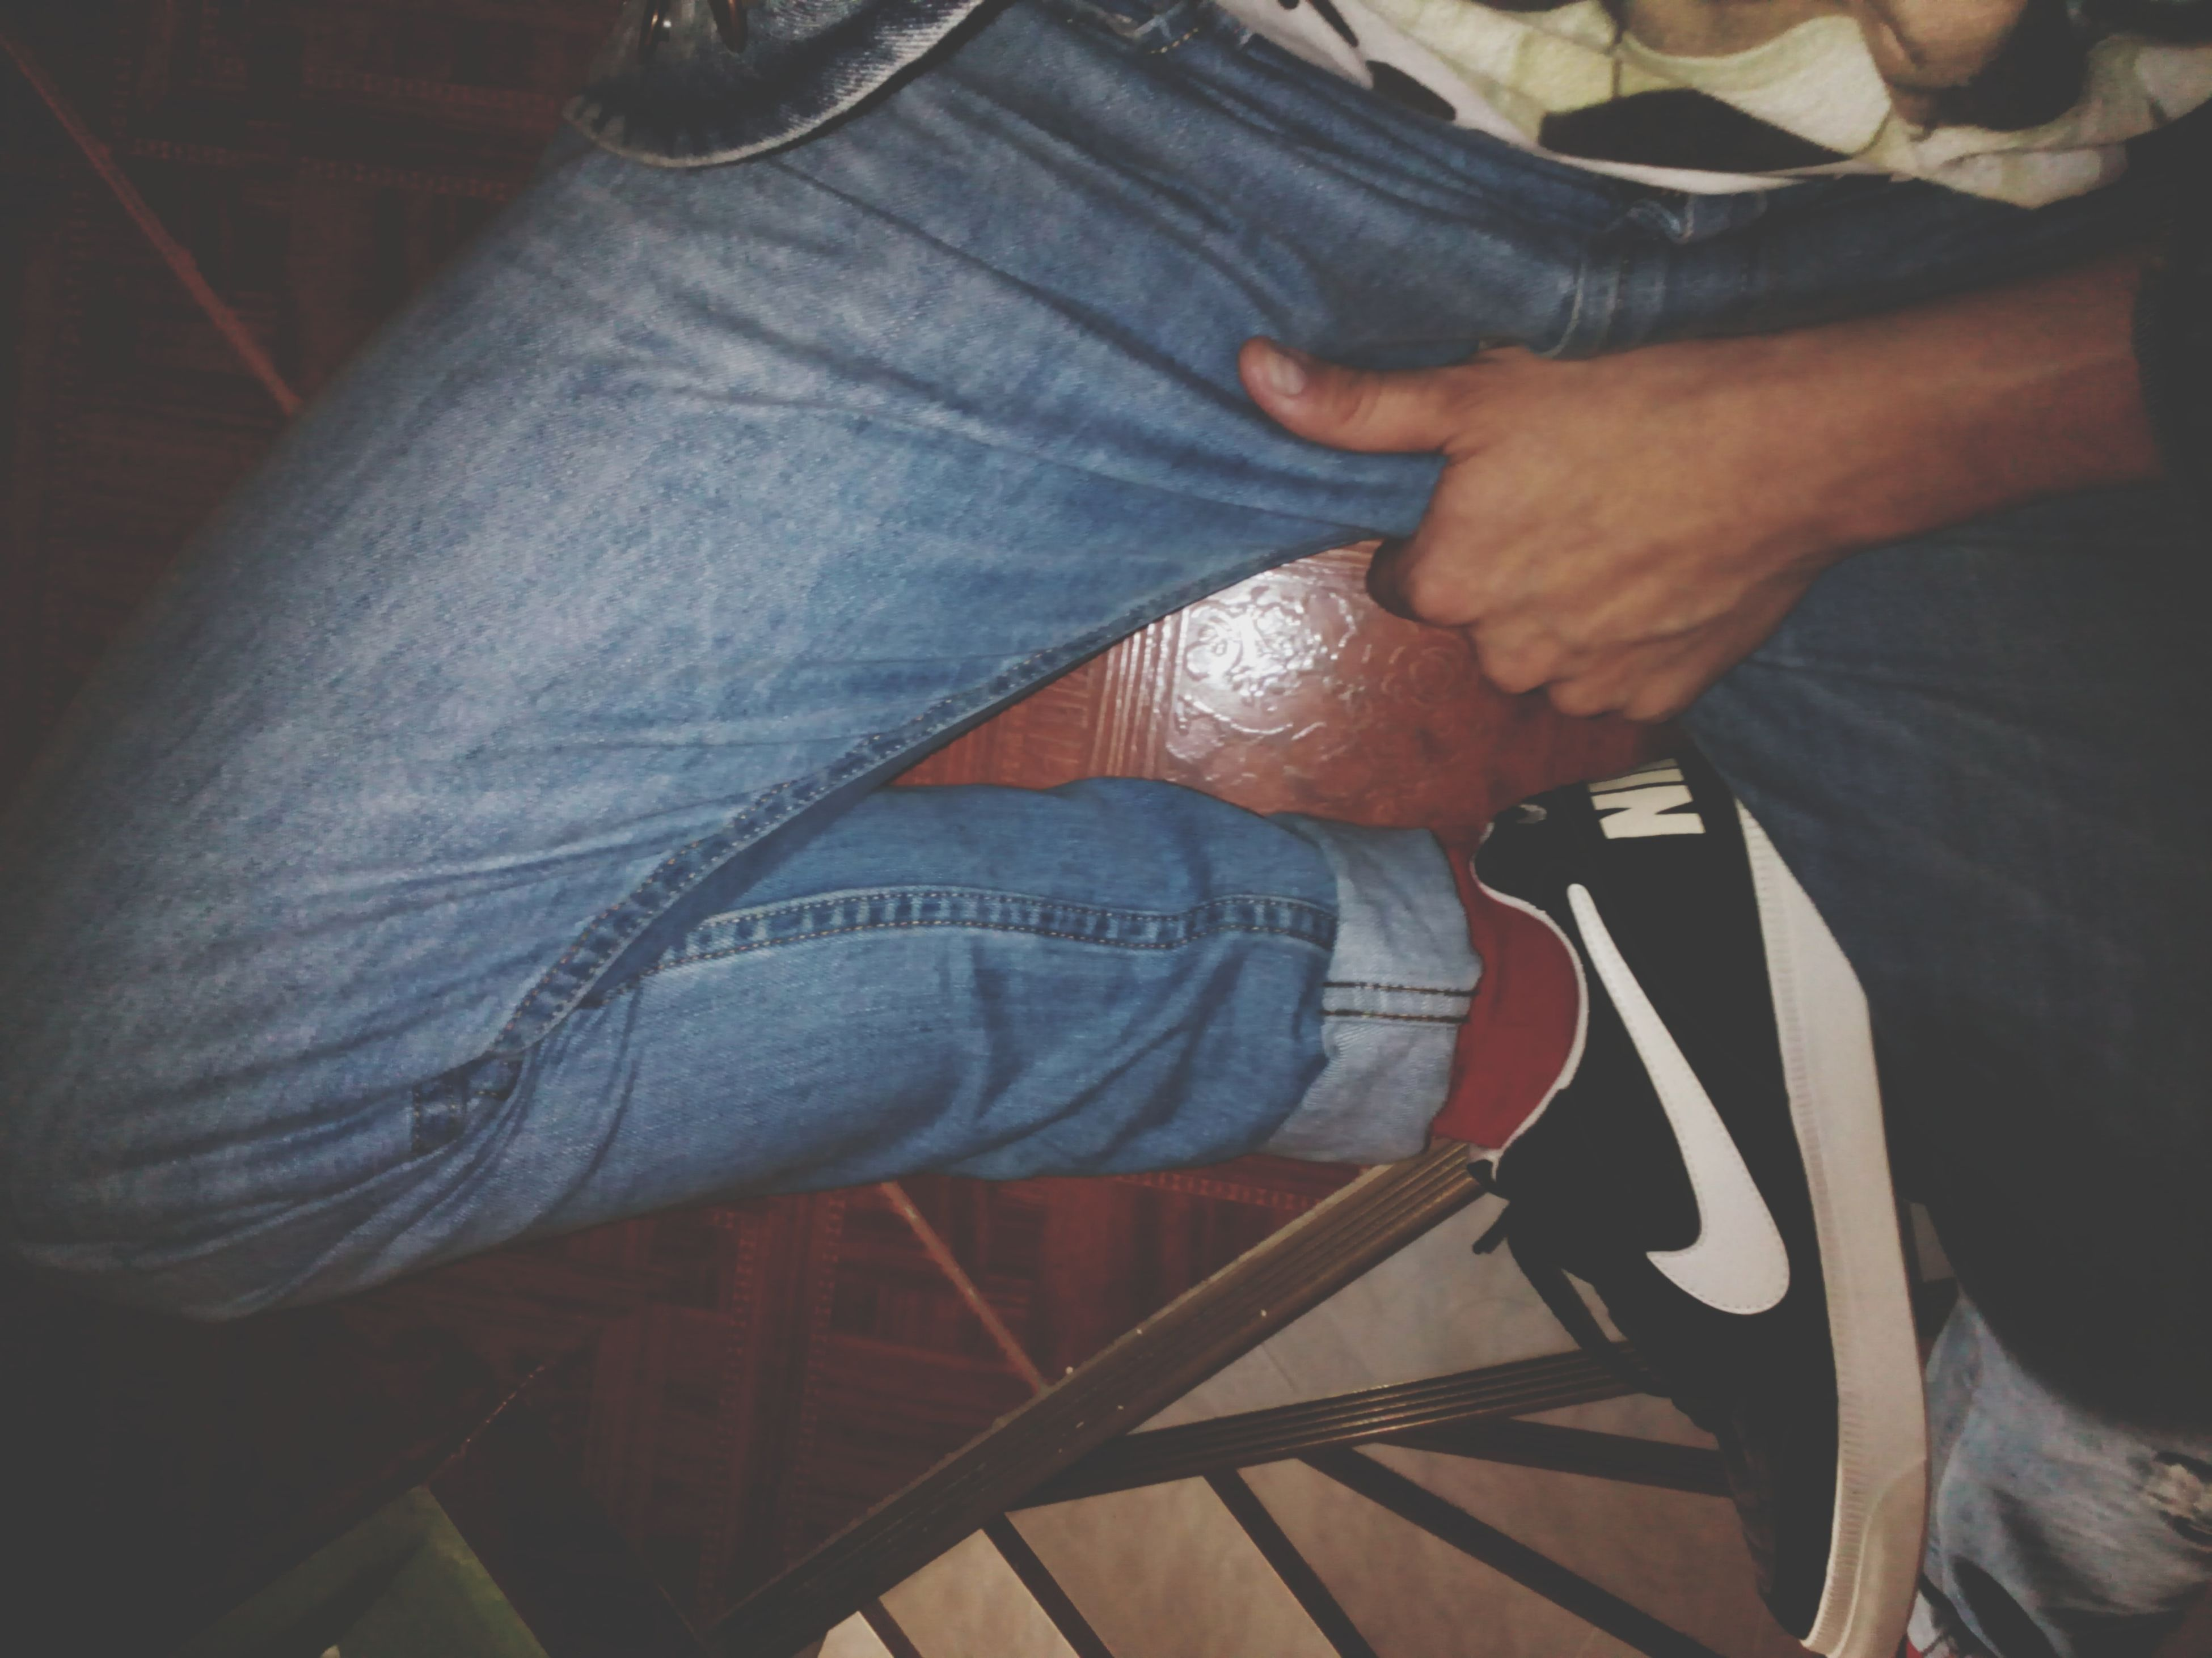 lifestyles, indoors, low section, person, men, leisure activity, wood - material, part of, standing, jeans, casual clothing, shoe, close-up, unrecognizable person, wooden